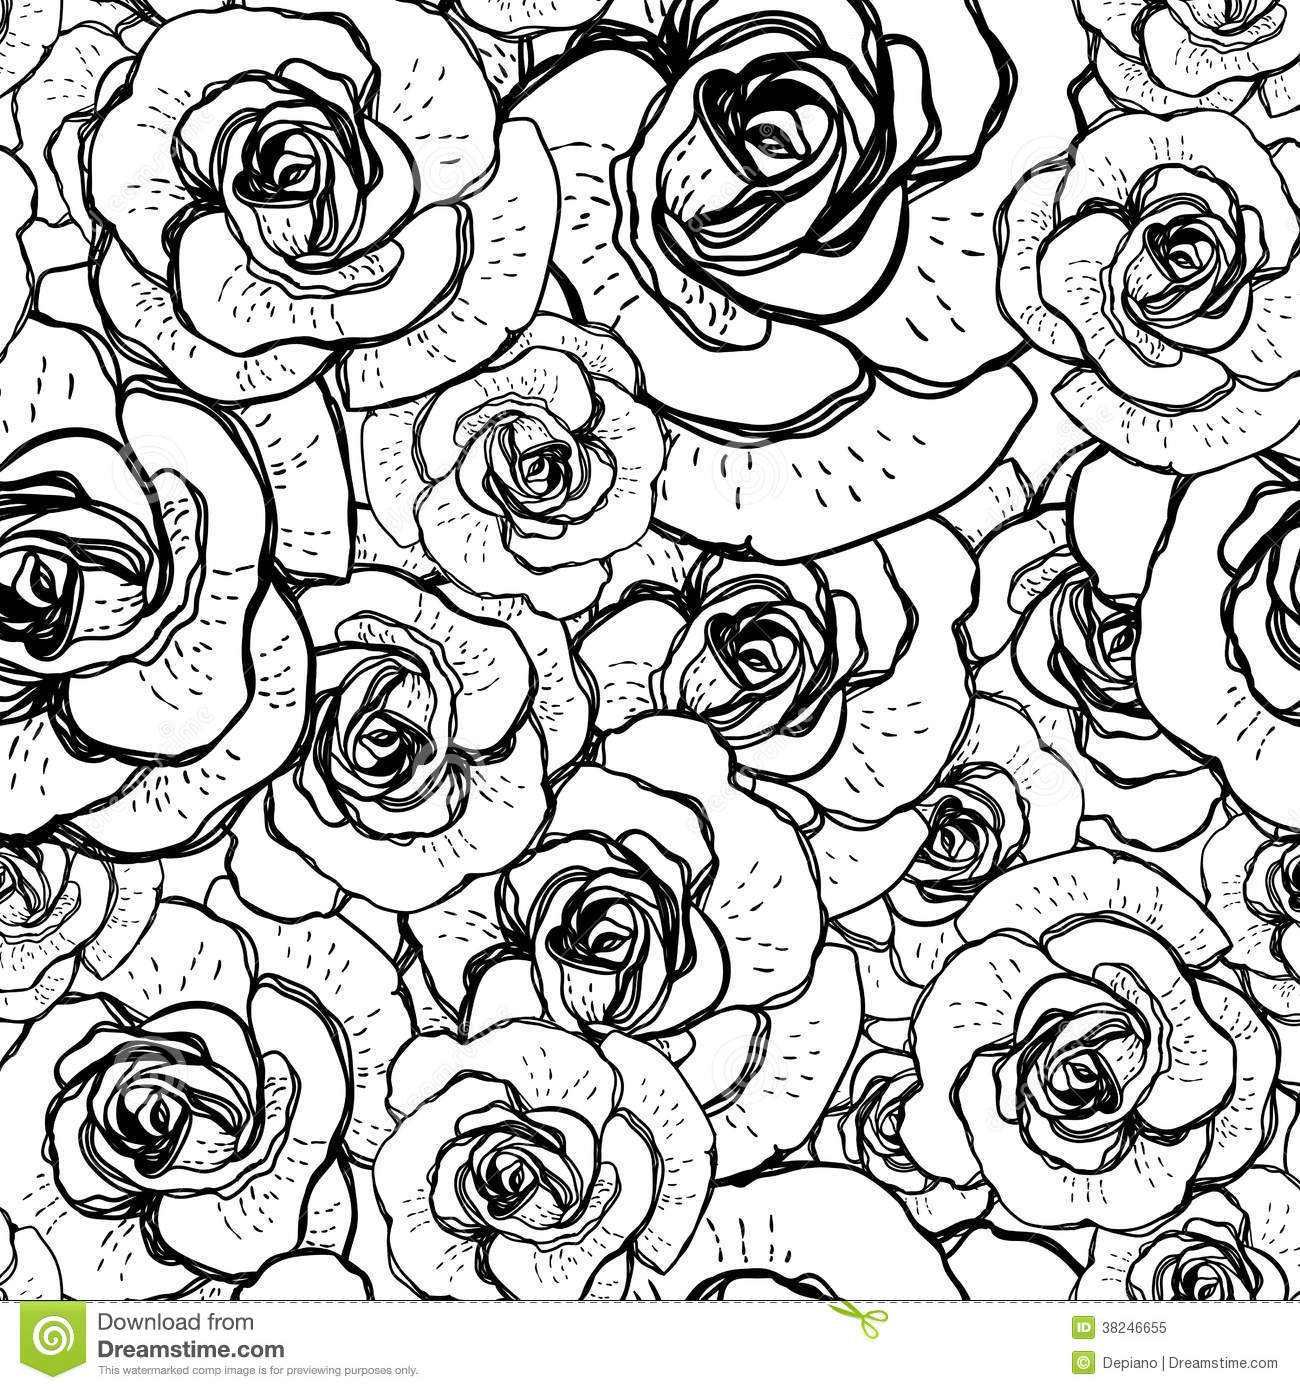 Black Flower On White Background Royalty Free Stock: Seamless Black And White Background With Roses Stock